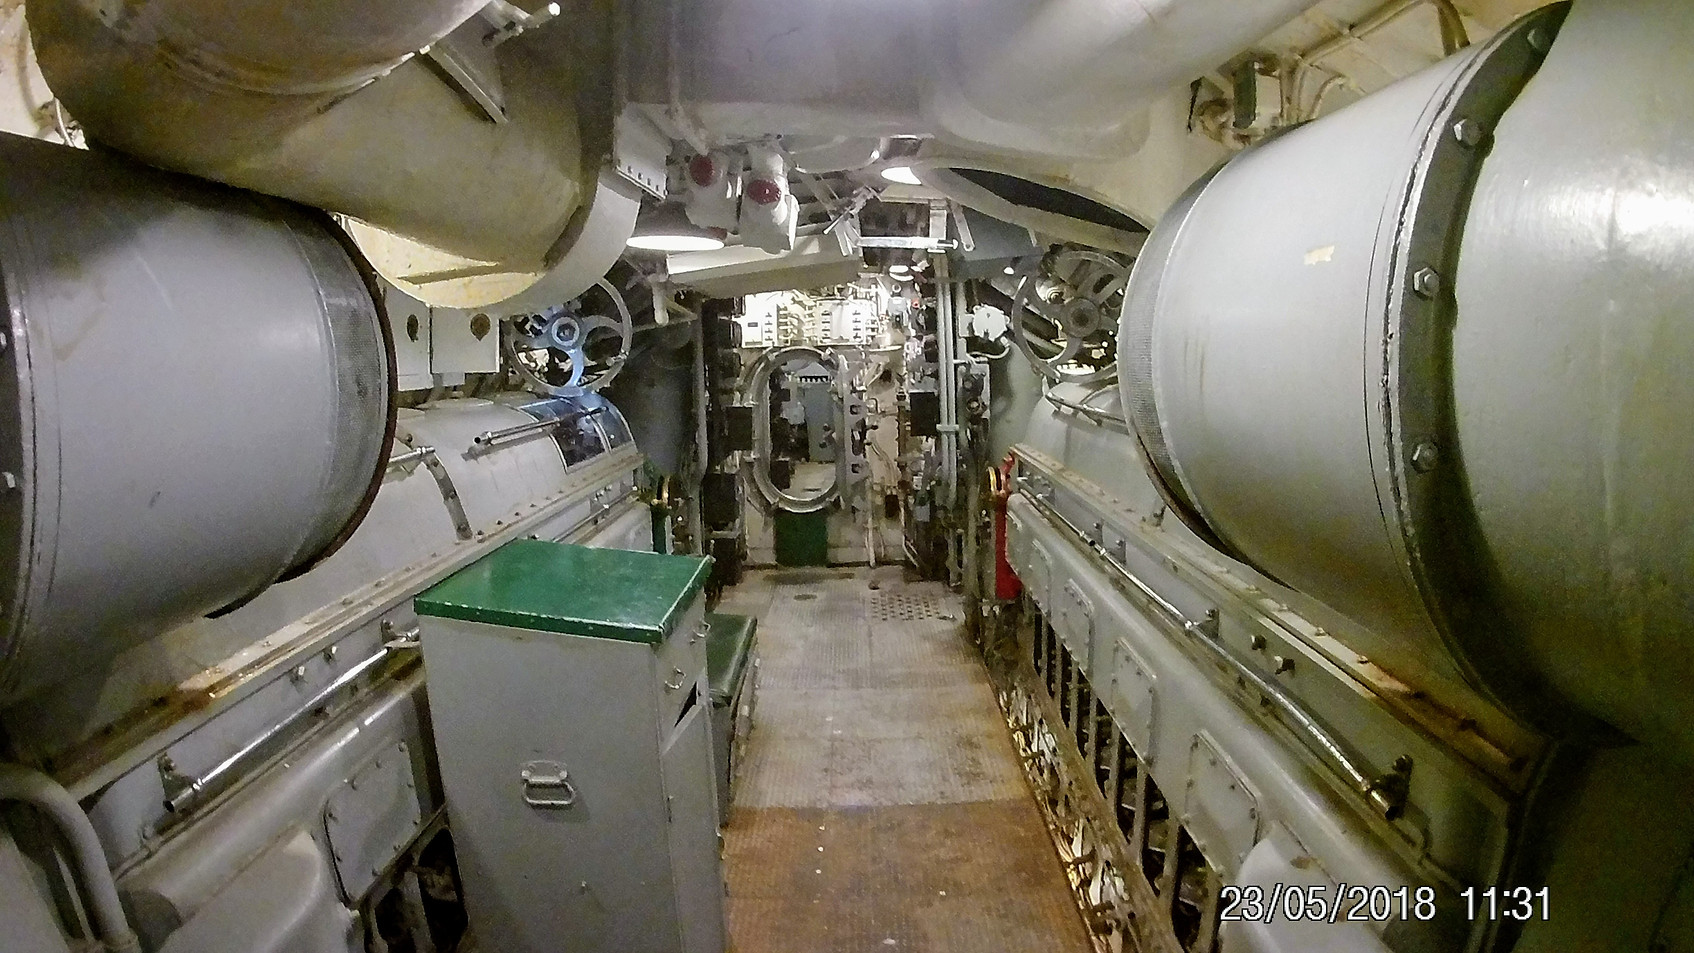 Bunks beneath torpedoes